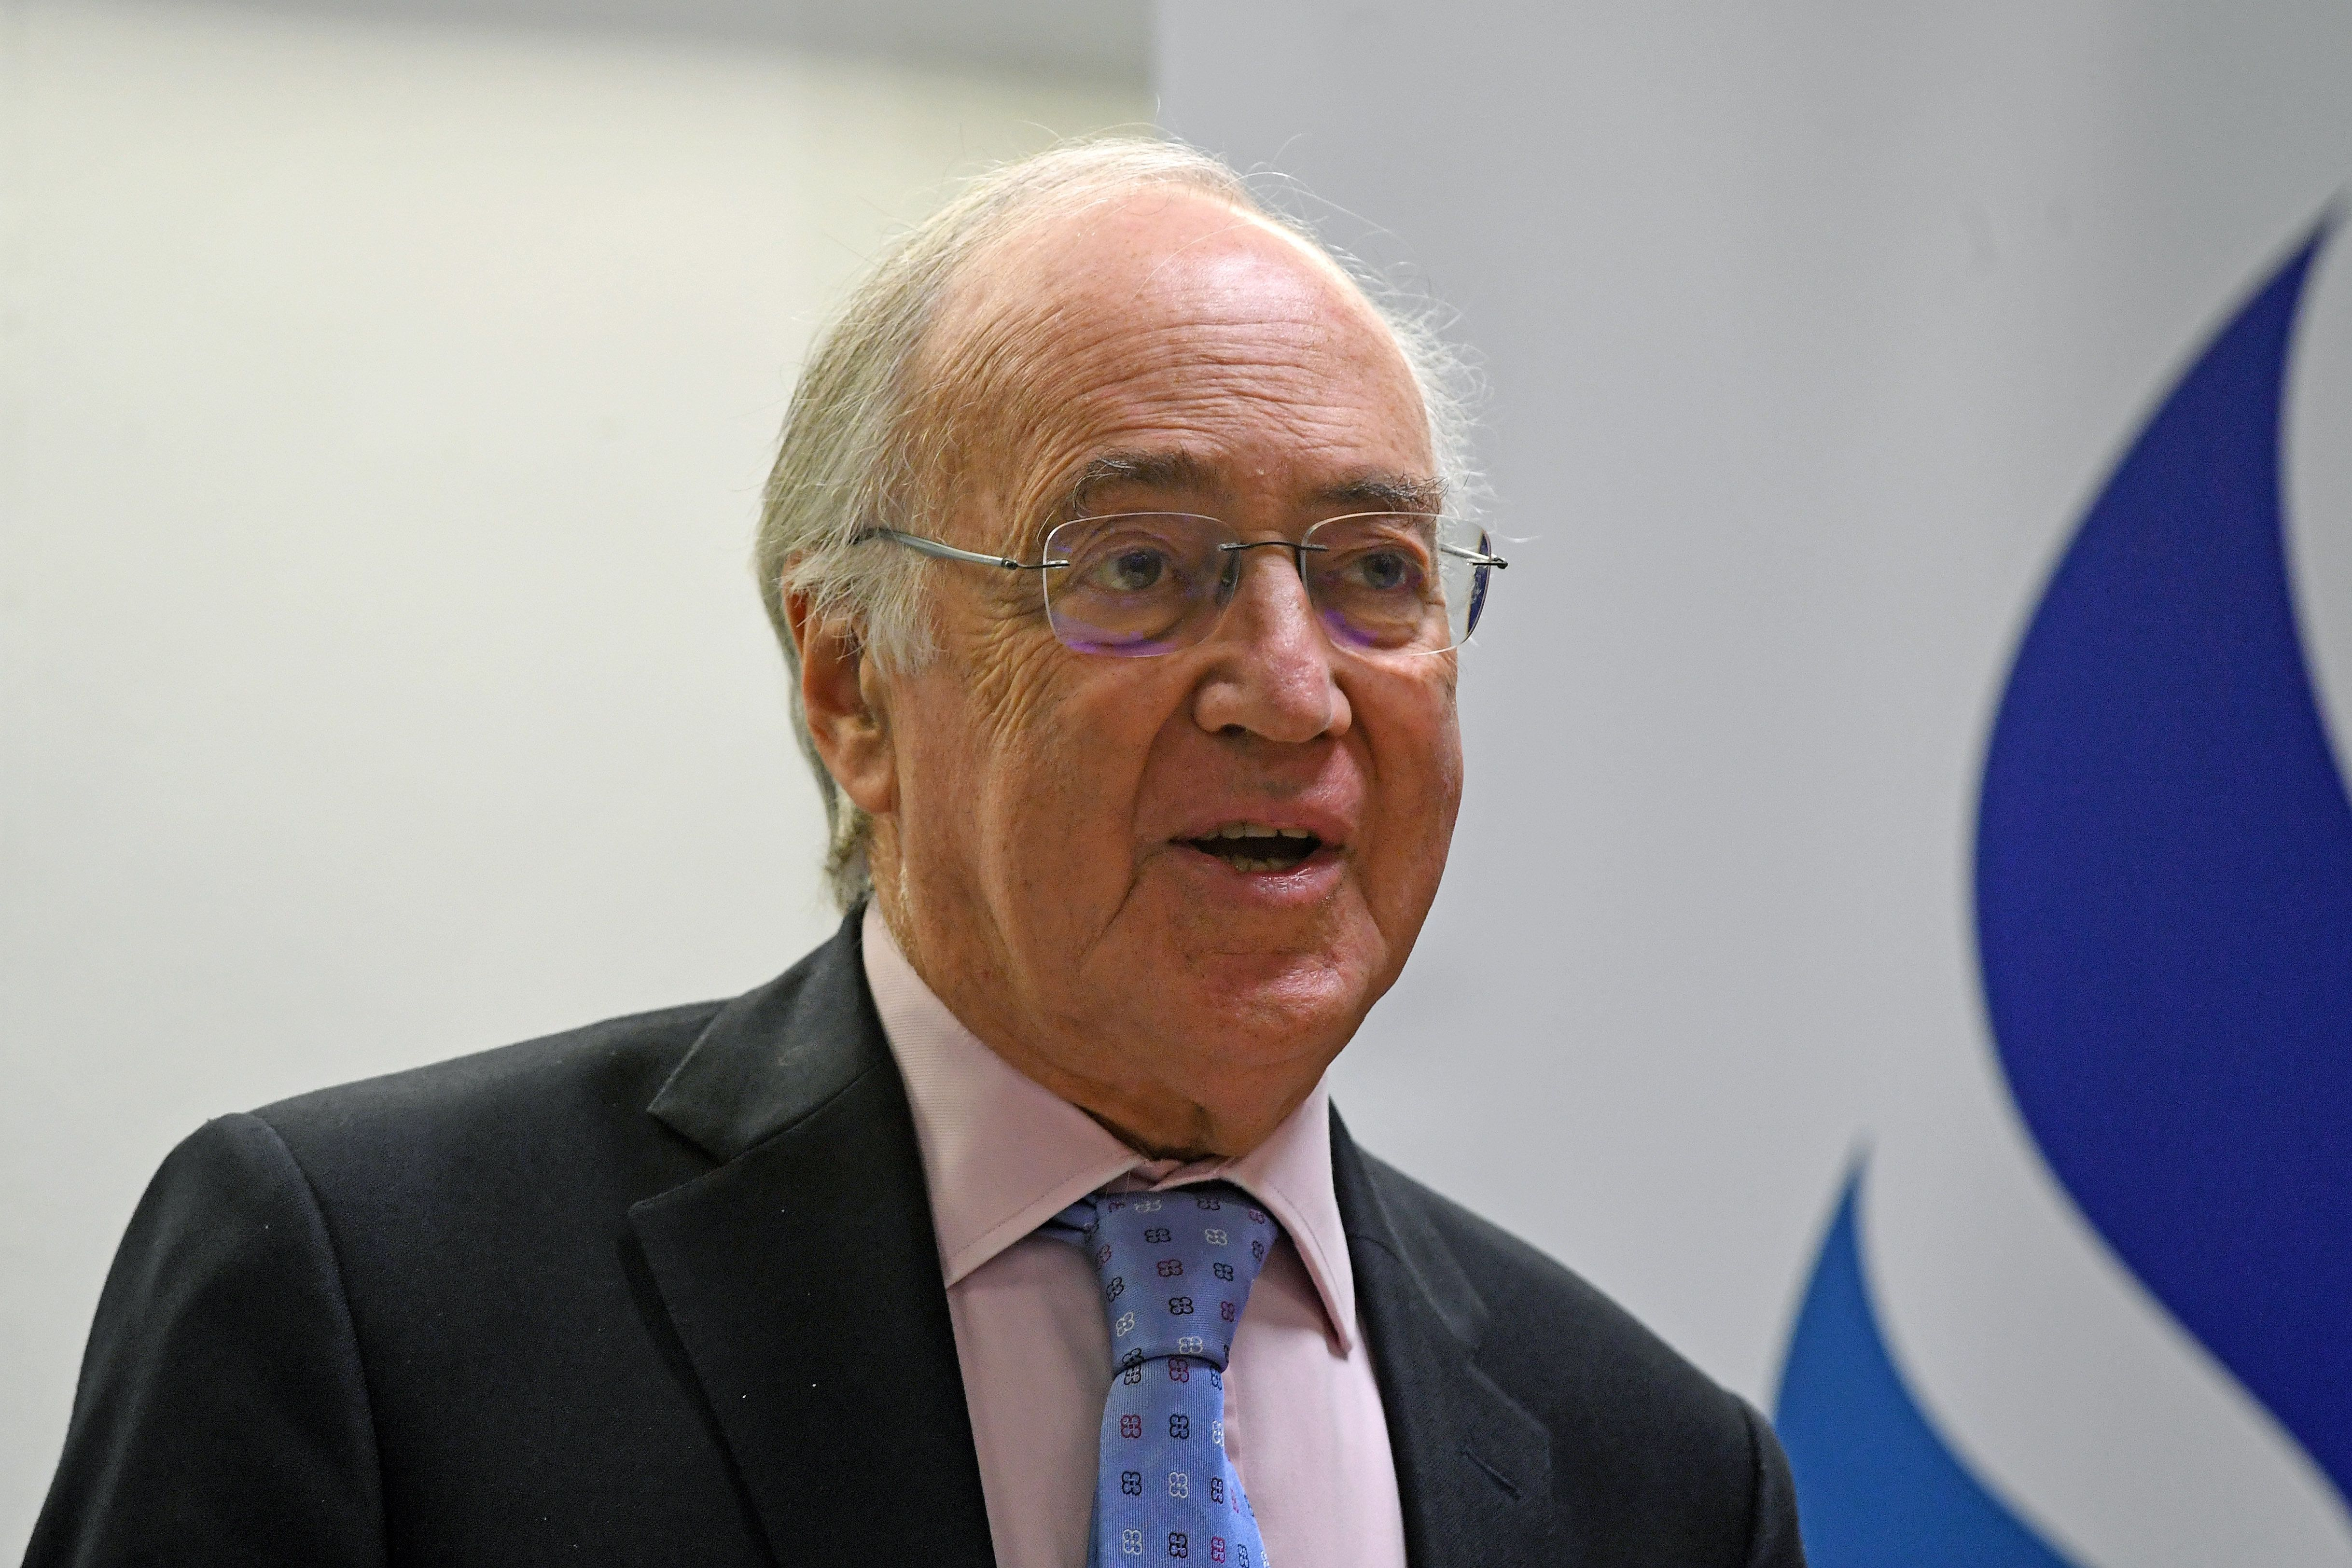 <strong>Michael Howard</strong>